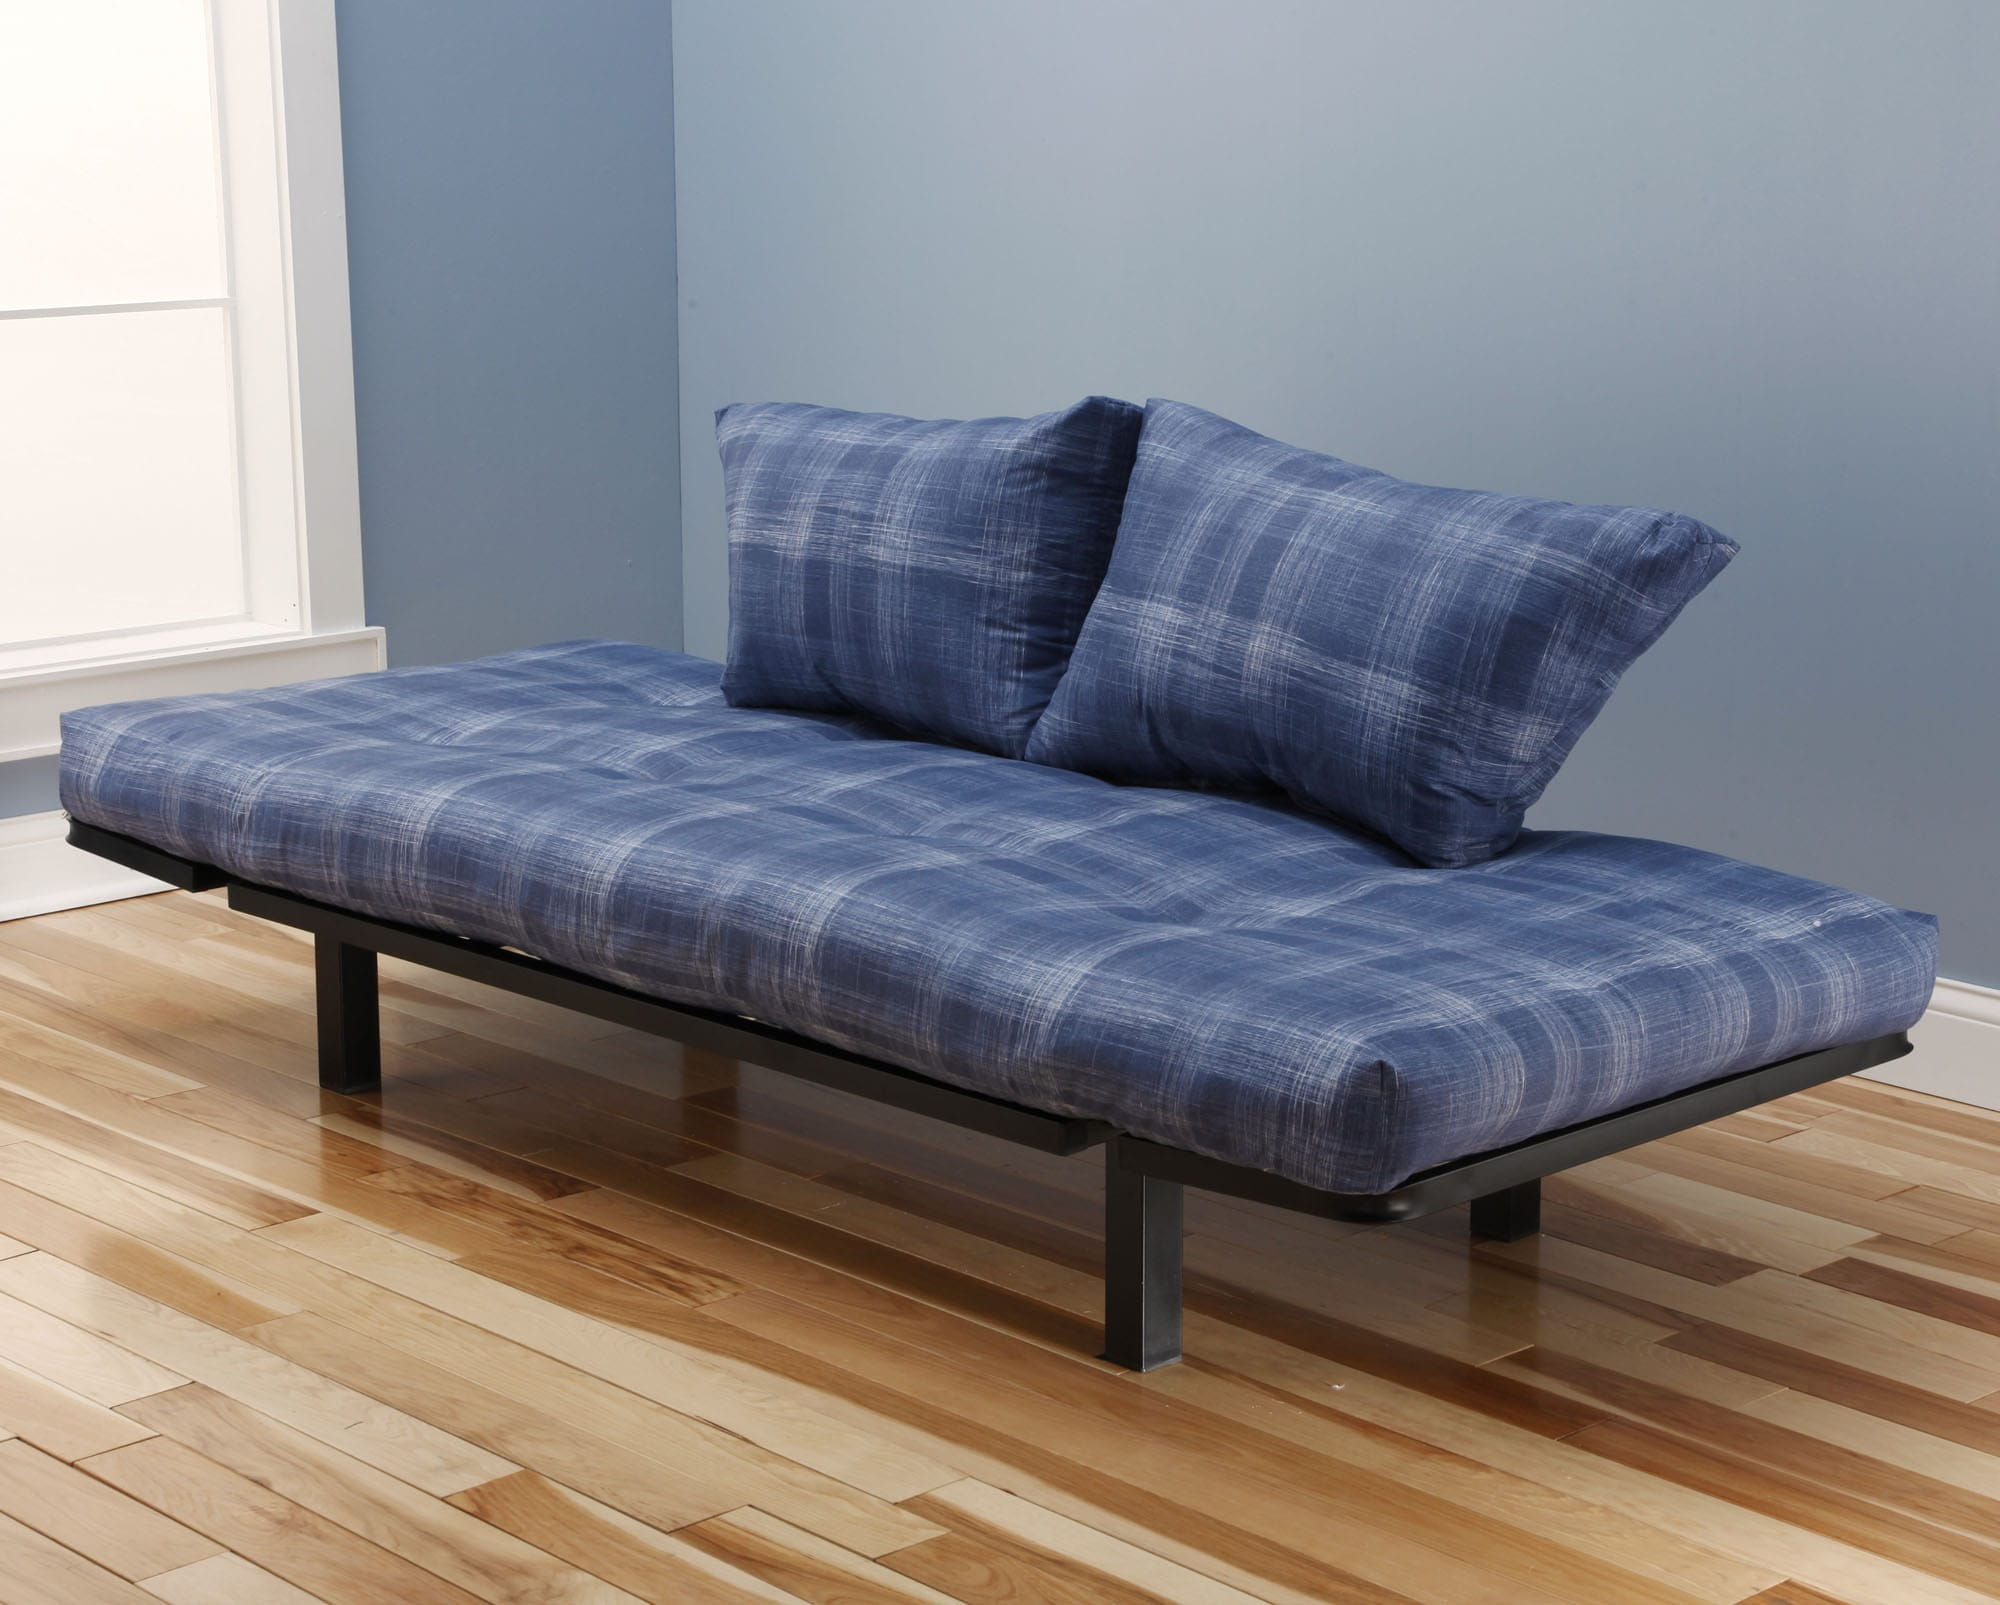 Spacely Futon Daybed Lounger With Mattress Dungaree By Kodiak